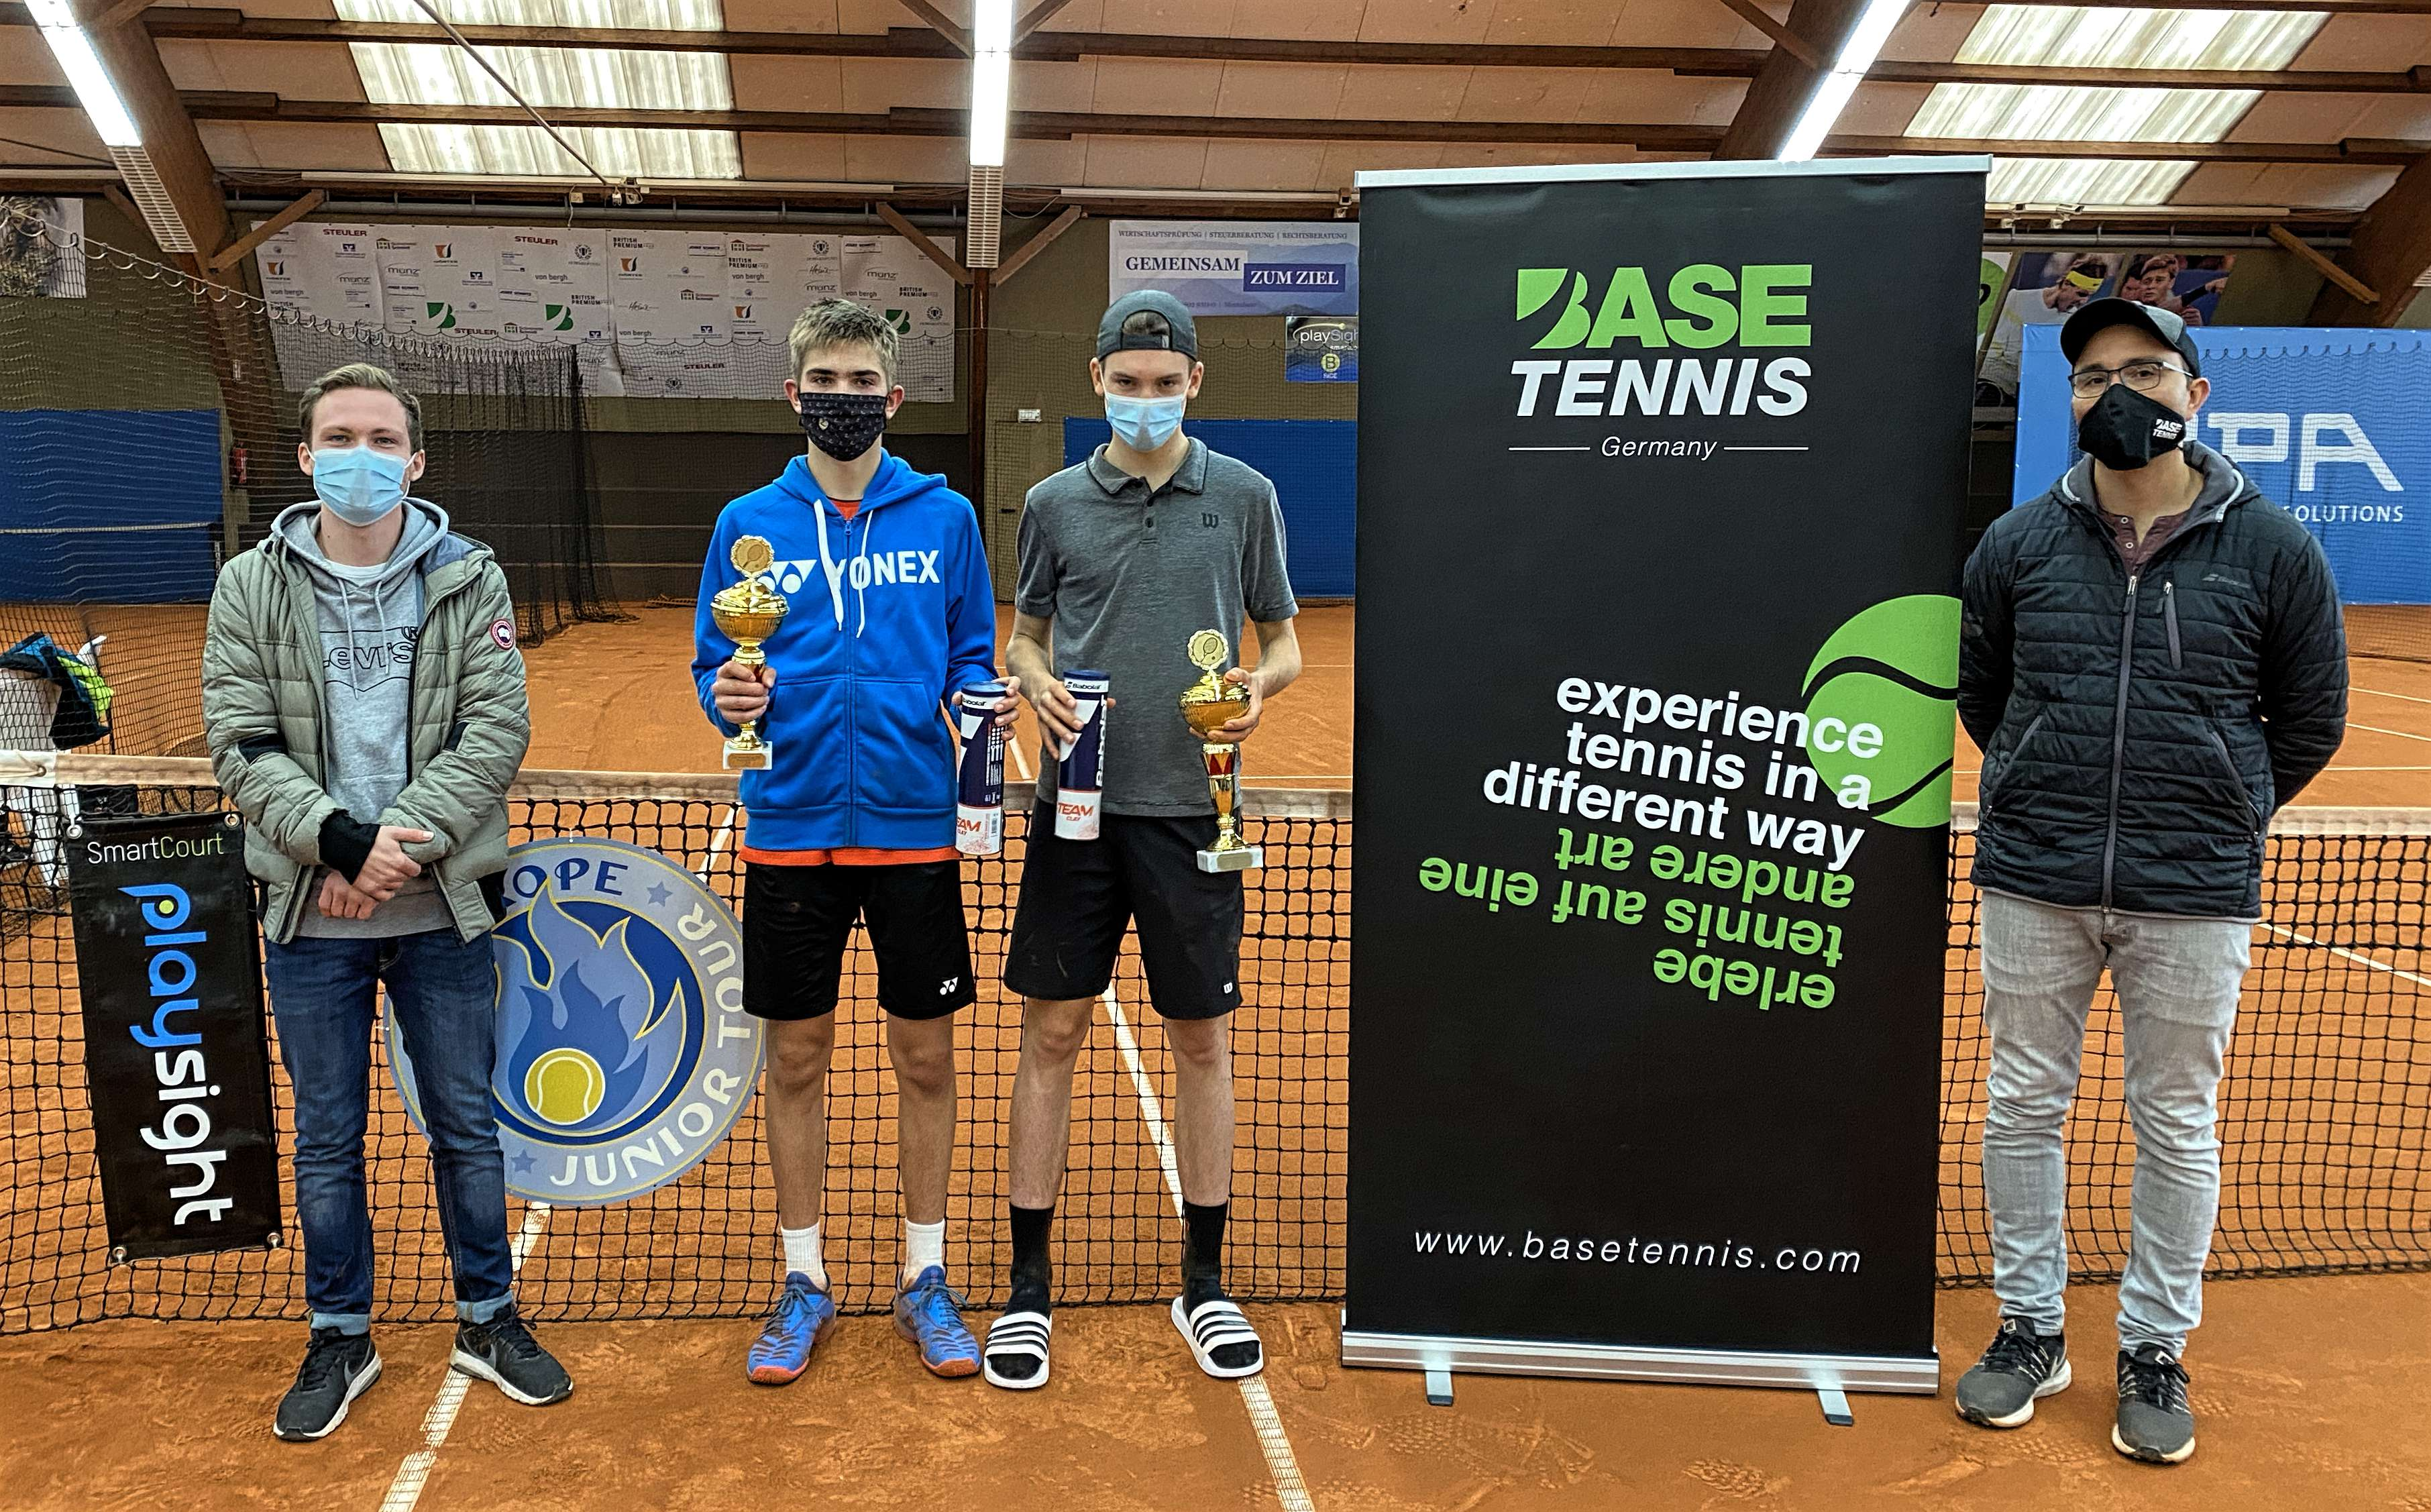 Max Stentzer (GER) and Mathilde Ngijol Carre (FRA) crowned champions of 2. Edition of the International Playsight Cup!